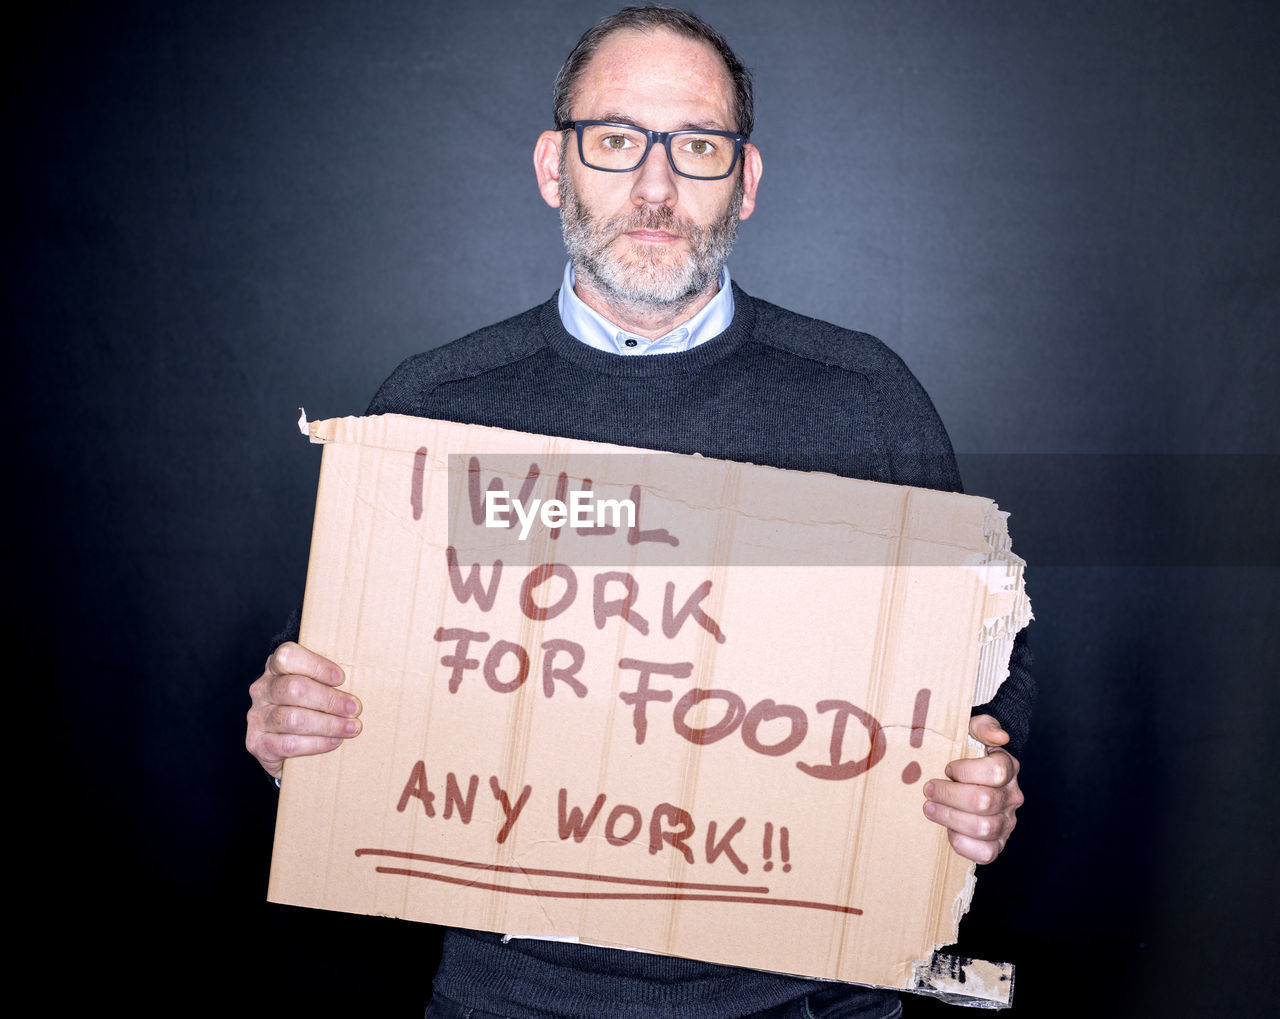 one person, communication, sign, casual clothing, front view, text, western script, beard, holding, men, indoors, sadness, males, mature adult, facial hair, eyeglasses, glasses, mature men, social issues, depression - sadness, message, black background, unemployment, economy